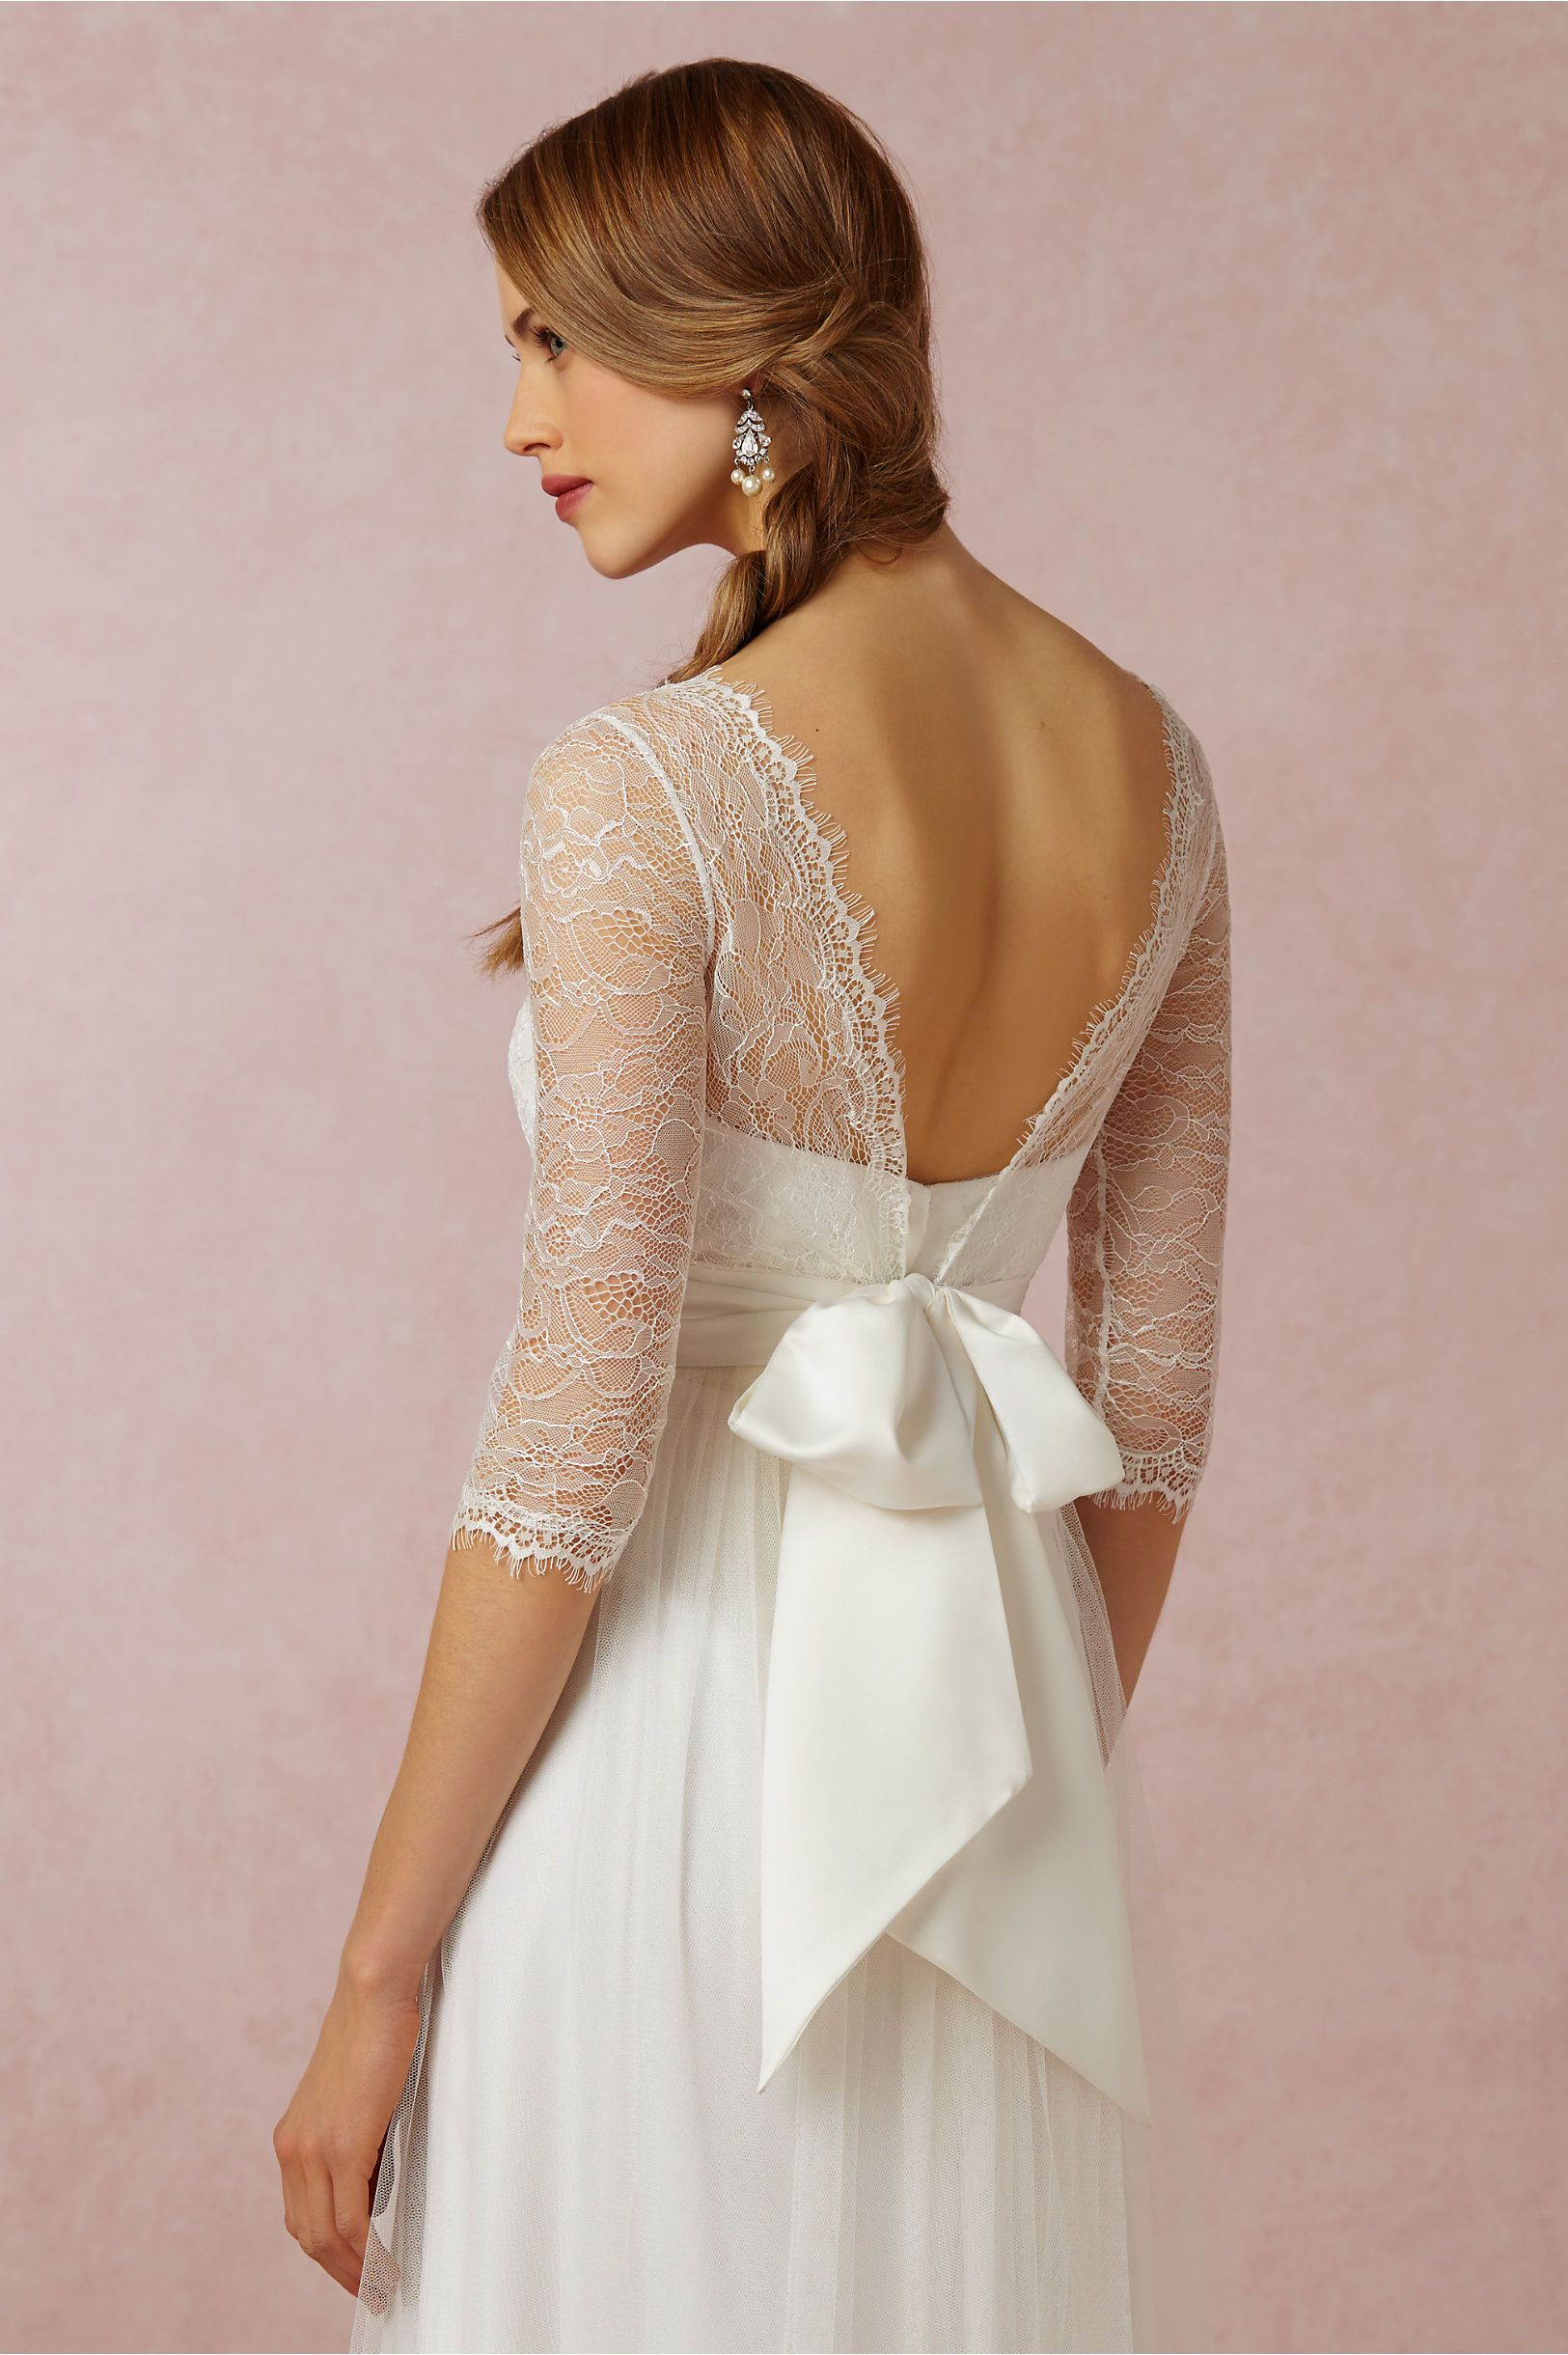 Amelie Topper In Shoes Amp Accessories Cover Ups At Bhldn